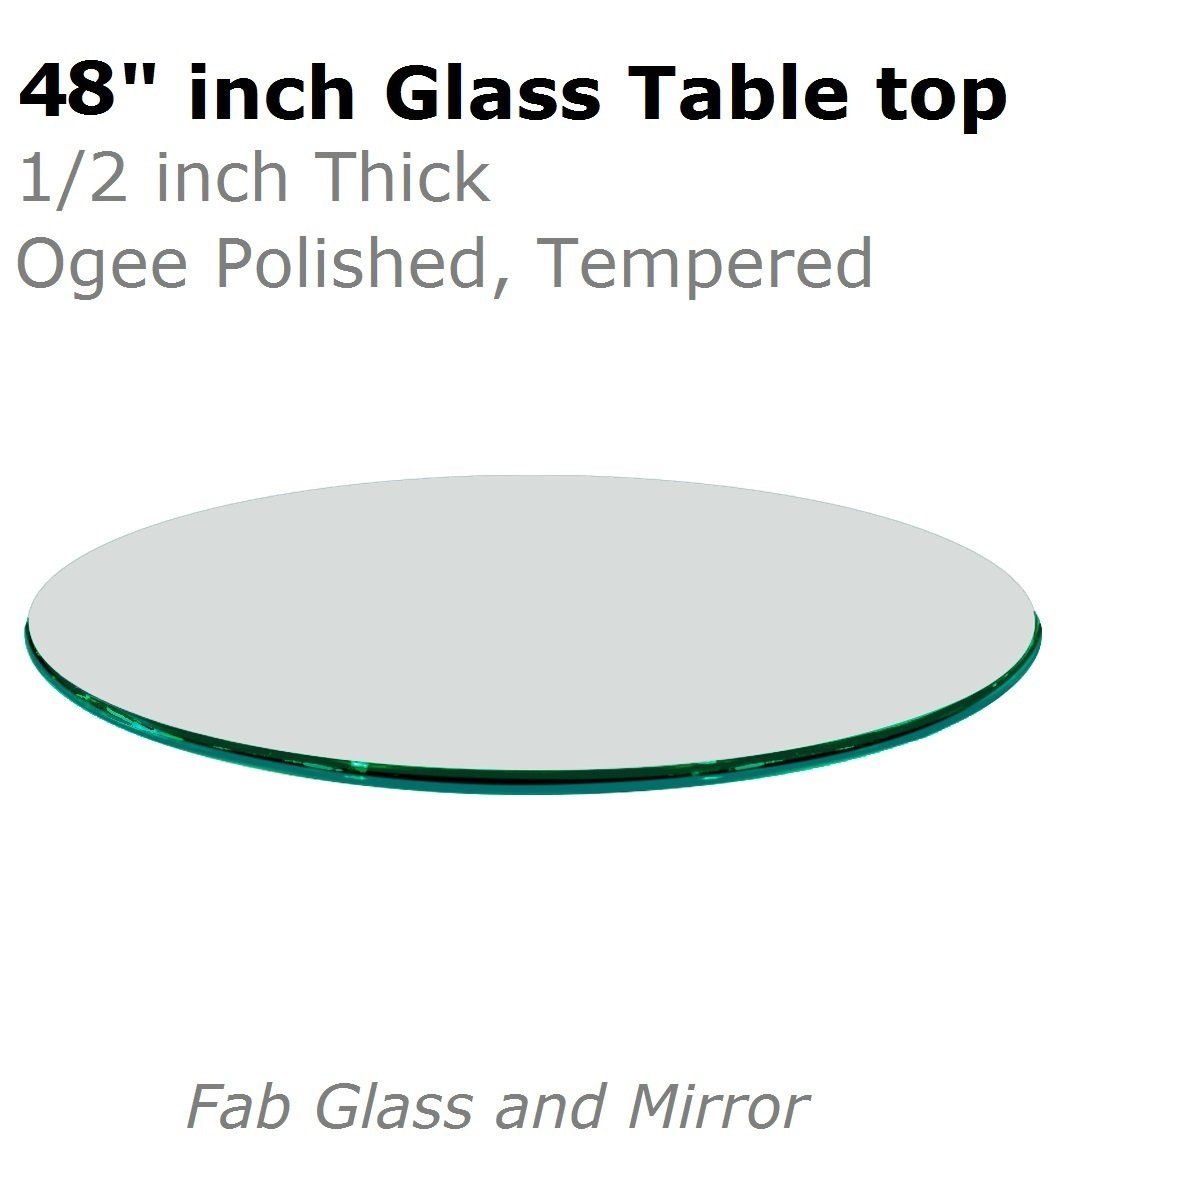 Fab Glass and Mirror T-48RD12MMOGTE 48'' Round 1/2'' Inch Thick Tempered Ogee Edge Polish Glass Table Top, Clear by Fab Glass and Mirror